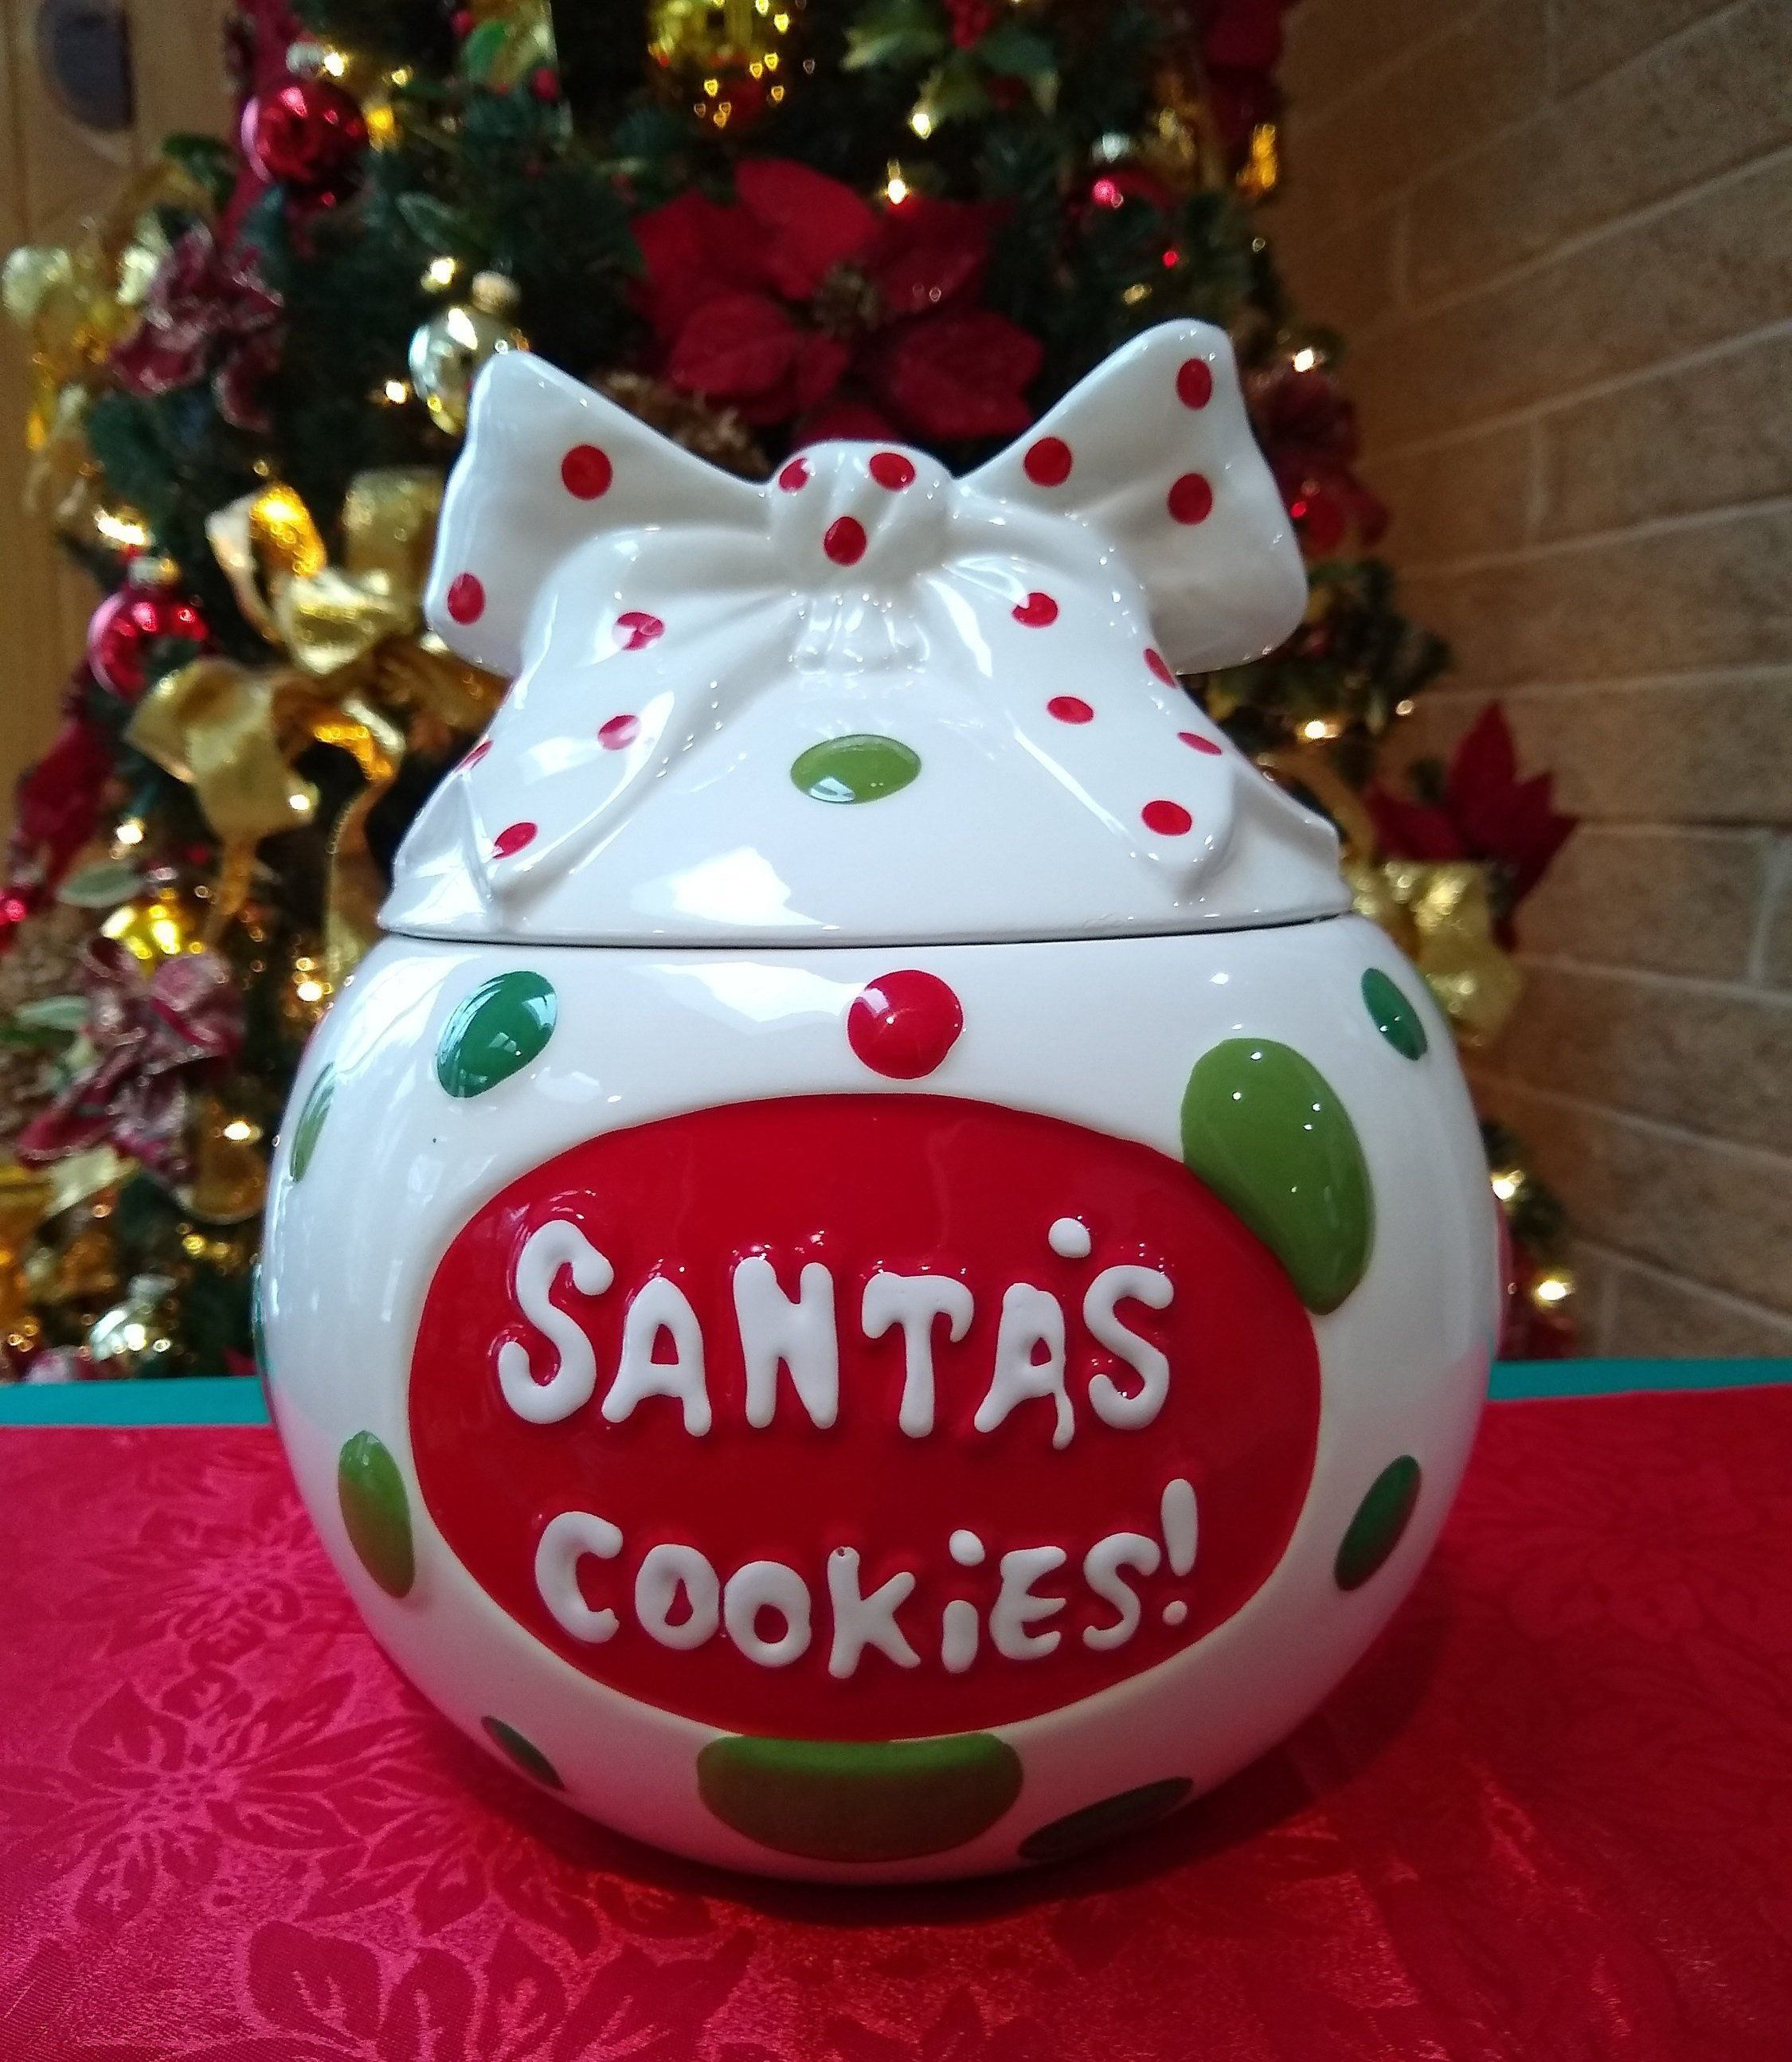 Santa S Cookies Ornament Cookie Jar Real Home Ceramic Christmas Cookie Jar Holiday Gift Excellent Condition Cookies For Santa Ornament Cookies Christmas Cookie Jars Santa Cookies